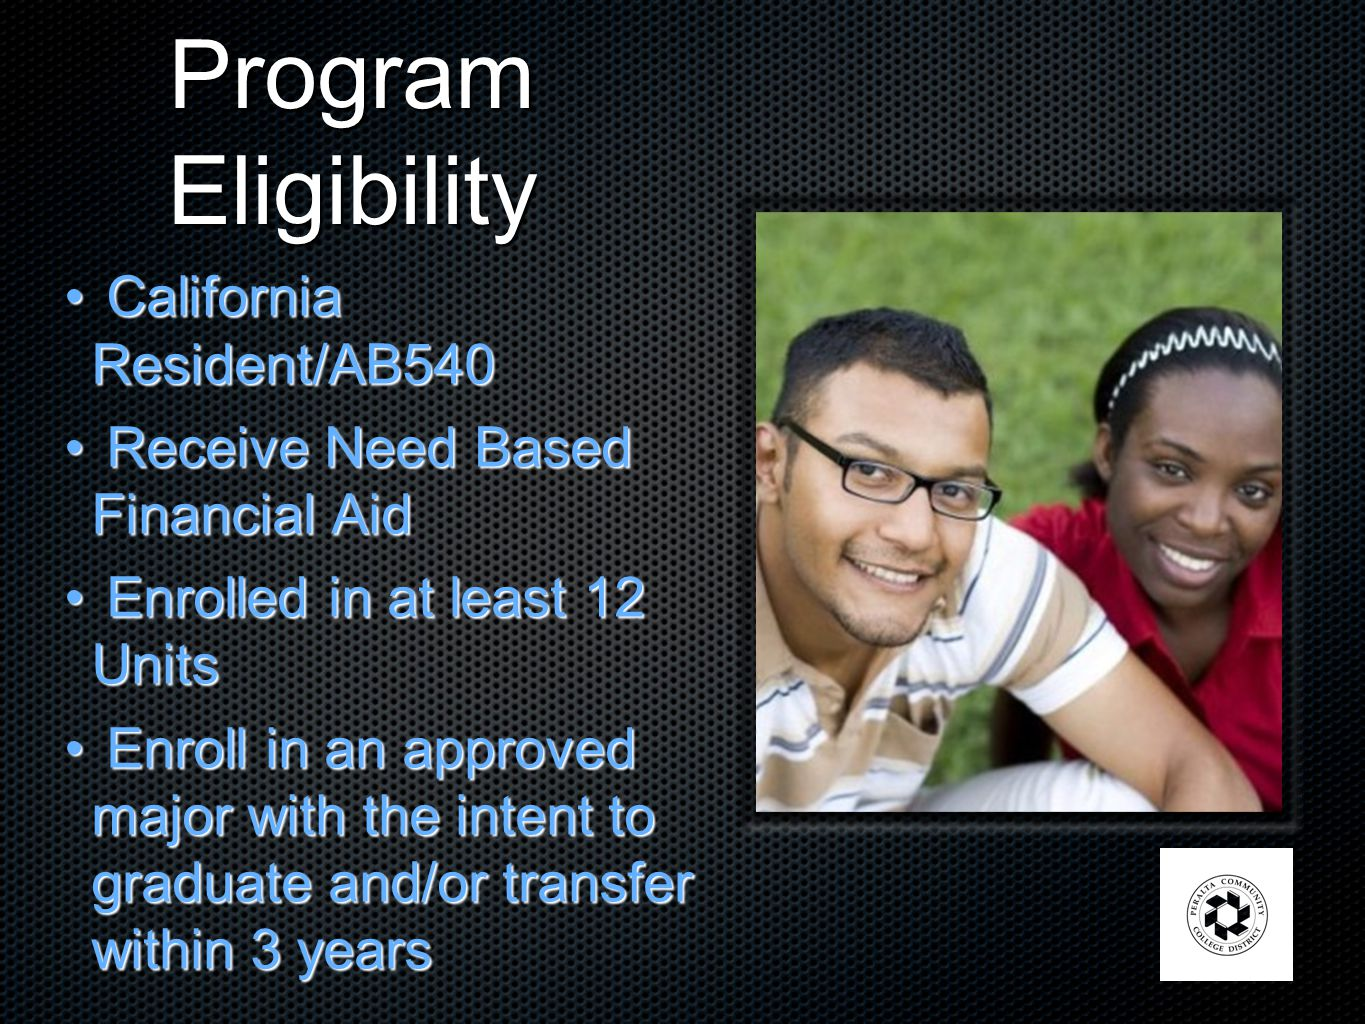 Program Eligibility California Resident/AB540 California Resident/AB540 Receive Need Based Financial Aid Receive Need Based Financial Aid Enrolled in at least 12 Units Enrolled in at least 12 Units Enroll in an approved major with the intent to graduate and/or transfer within 3 years Enroll in an approved major with the intent to graduate and/or transfer within 3 years